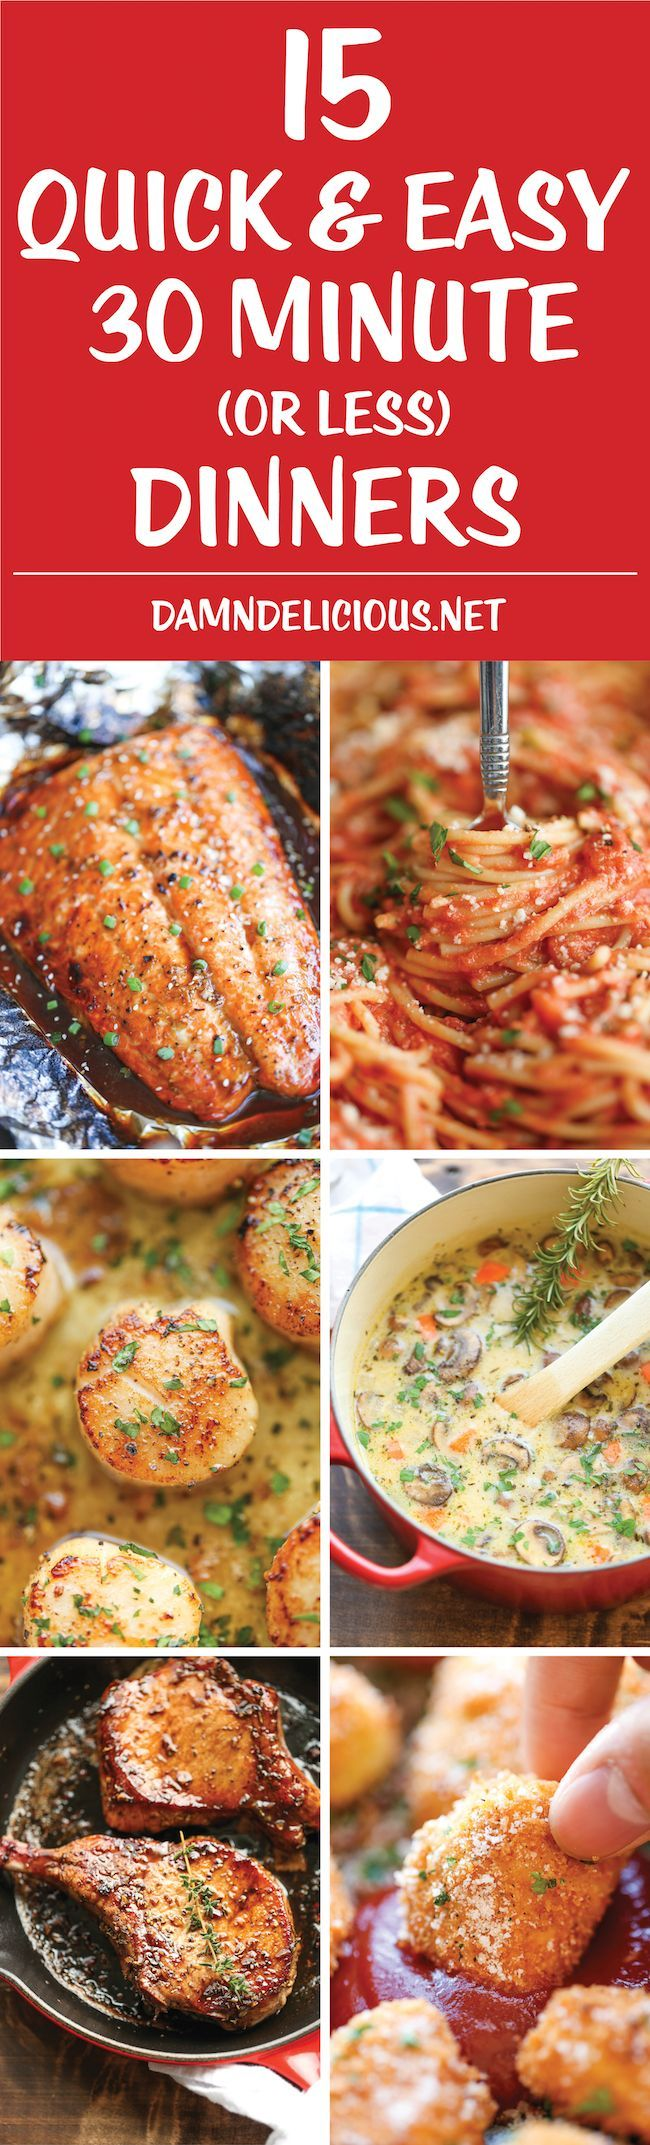 15 Quick And Easy 30 Minute Dinners Awesome Things